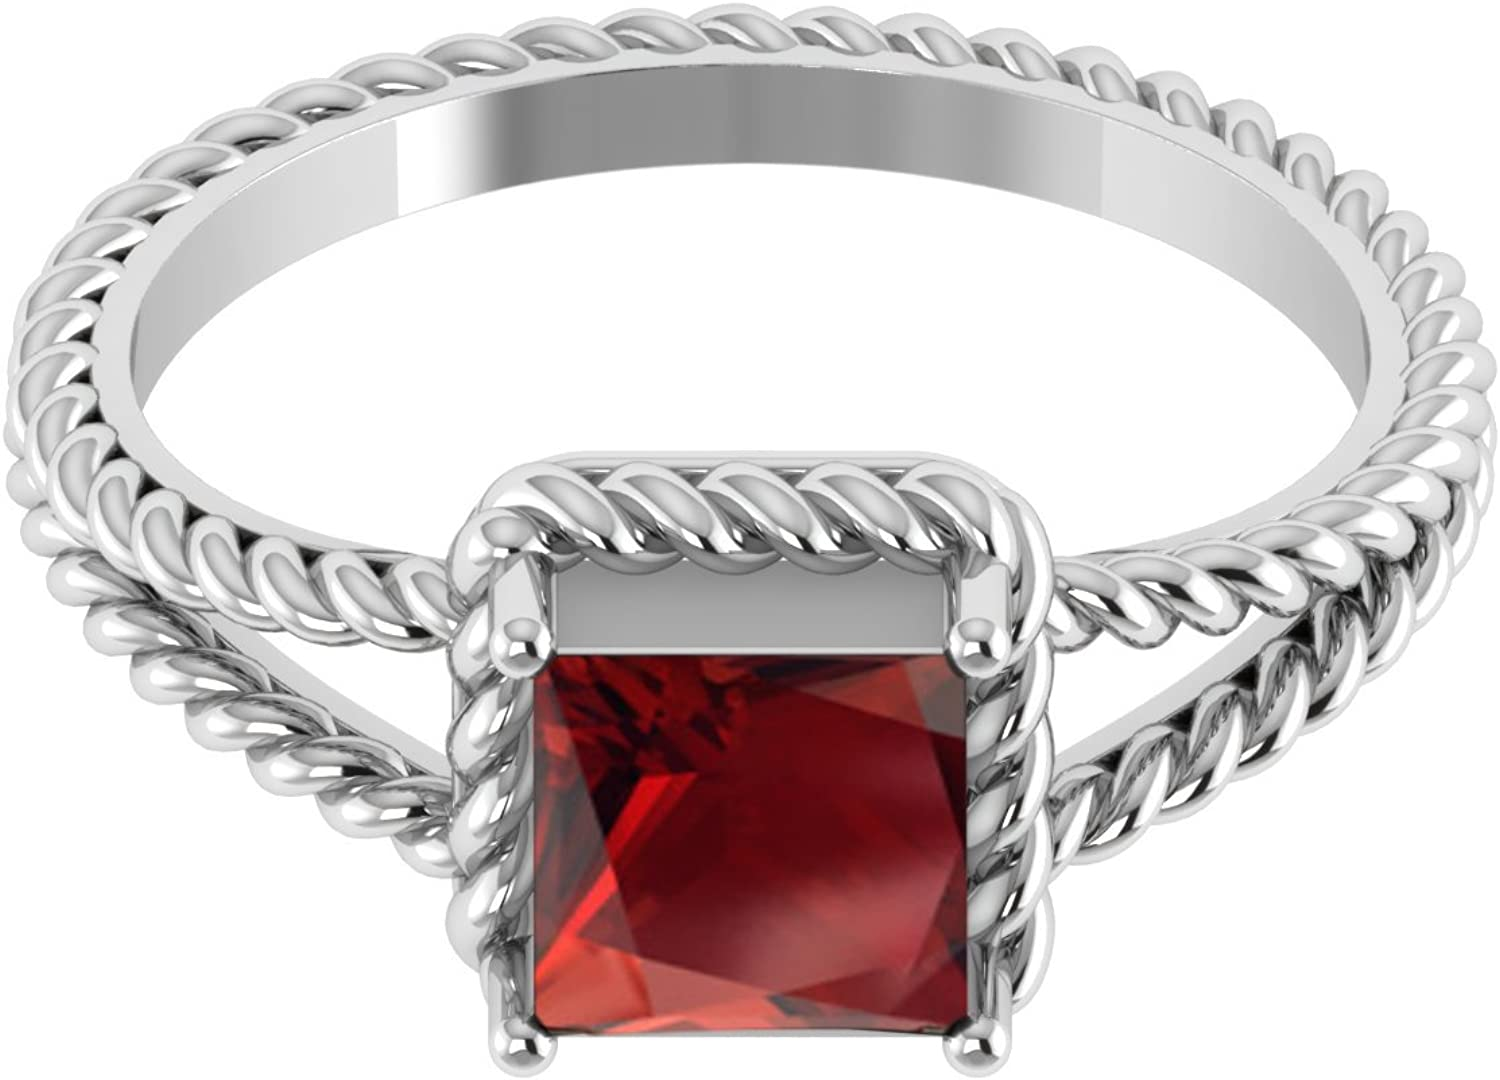 Square Cut Garnet Single Stone 925 Sterling Silver Twisted Rope Womens Wedding Gift Ring